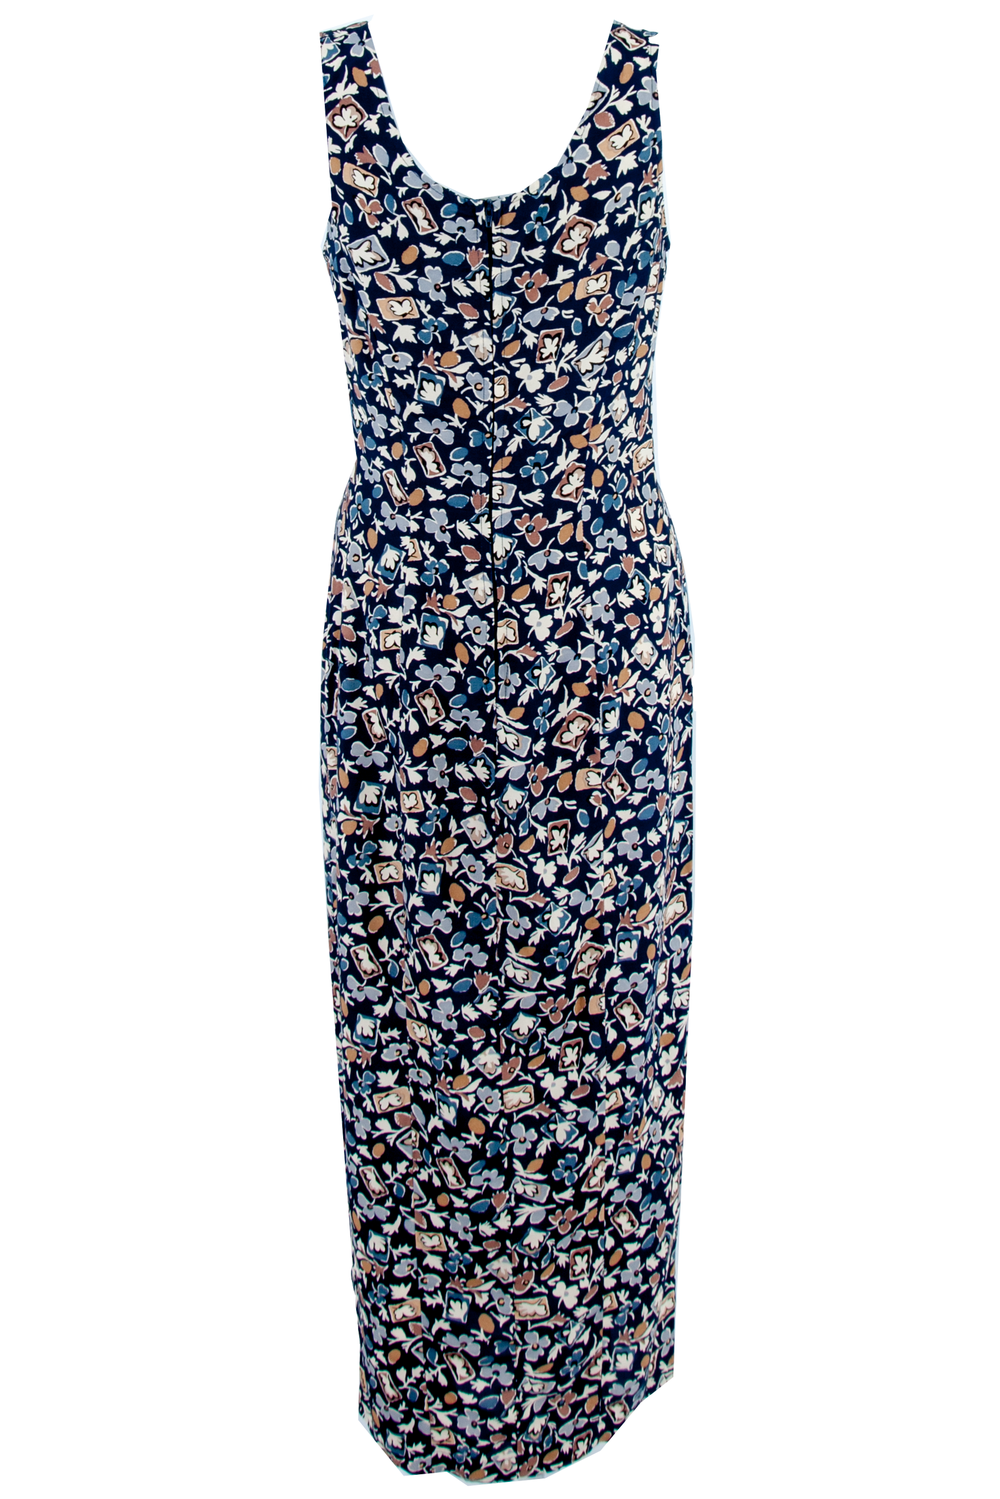 vintage sleeveless navy maxi dress with floral print